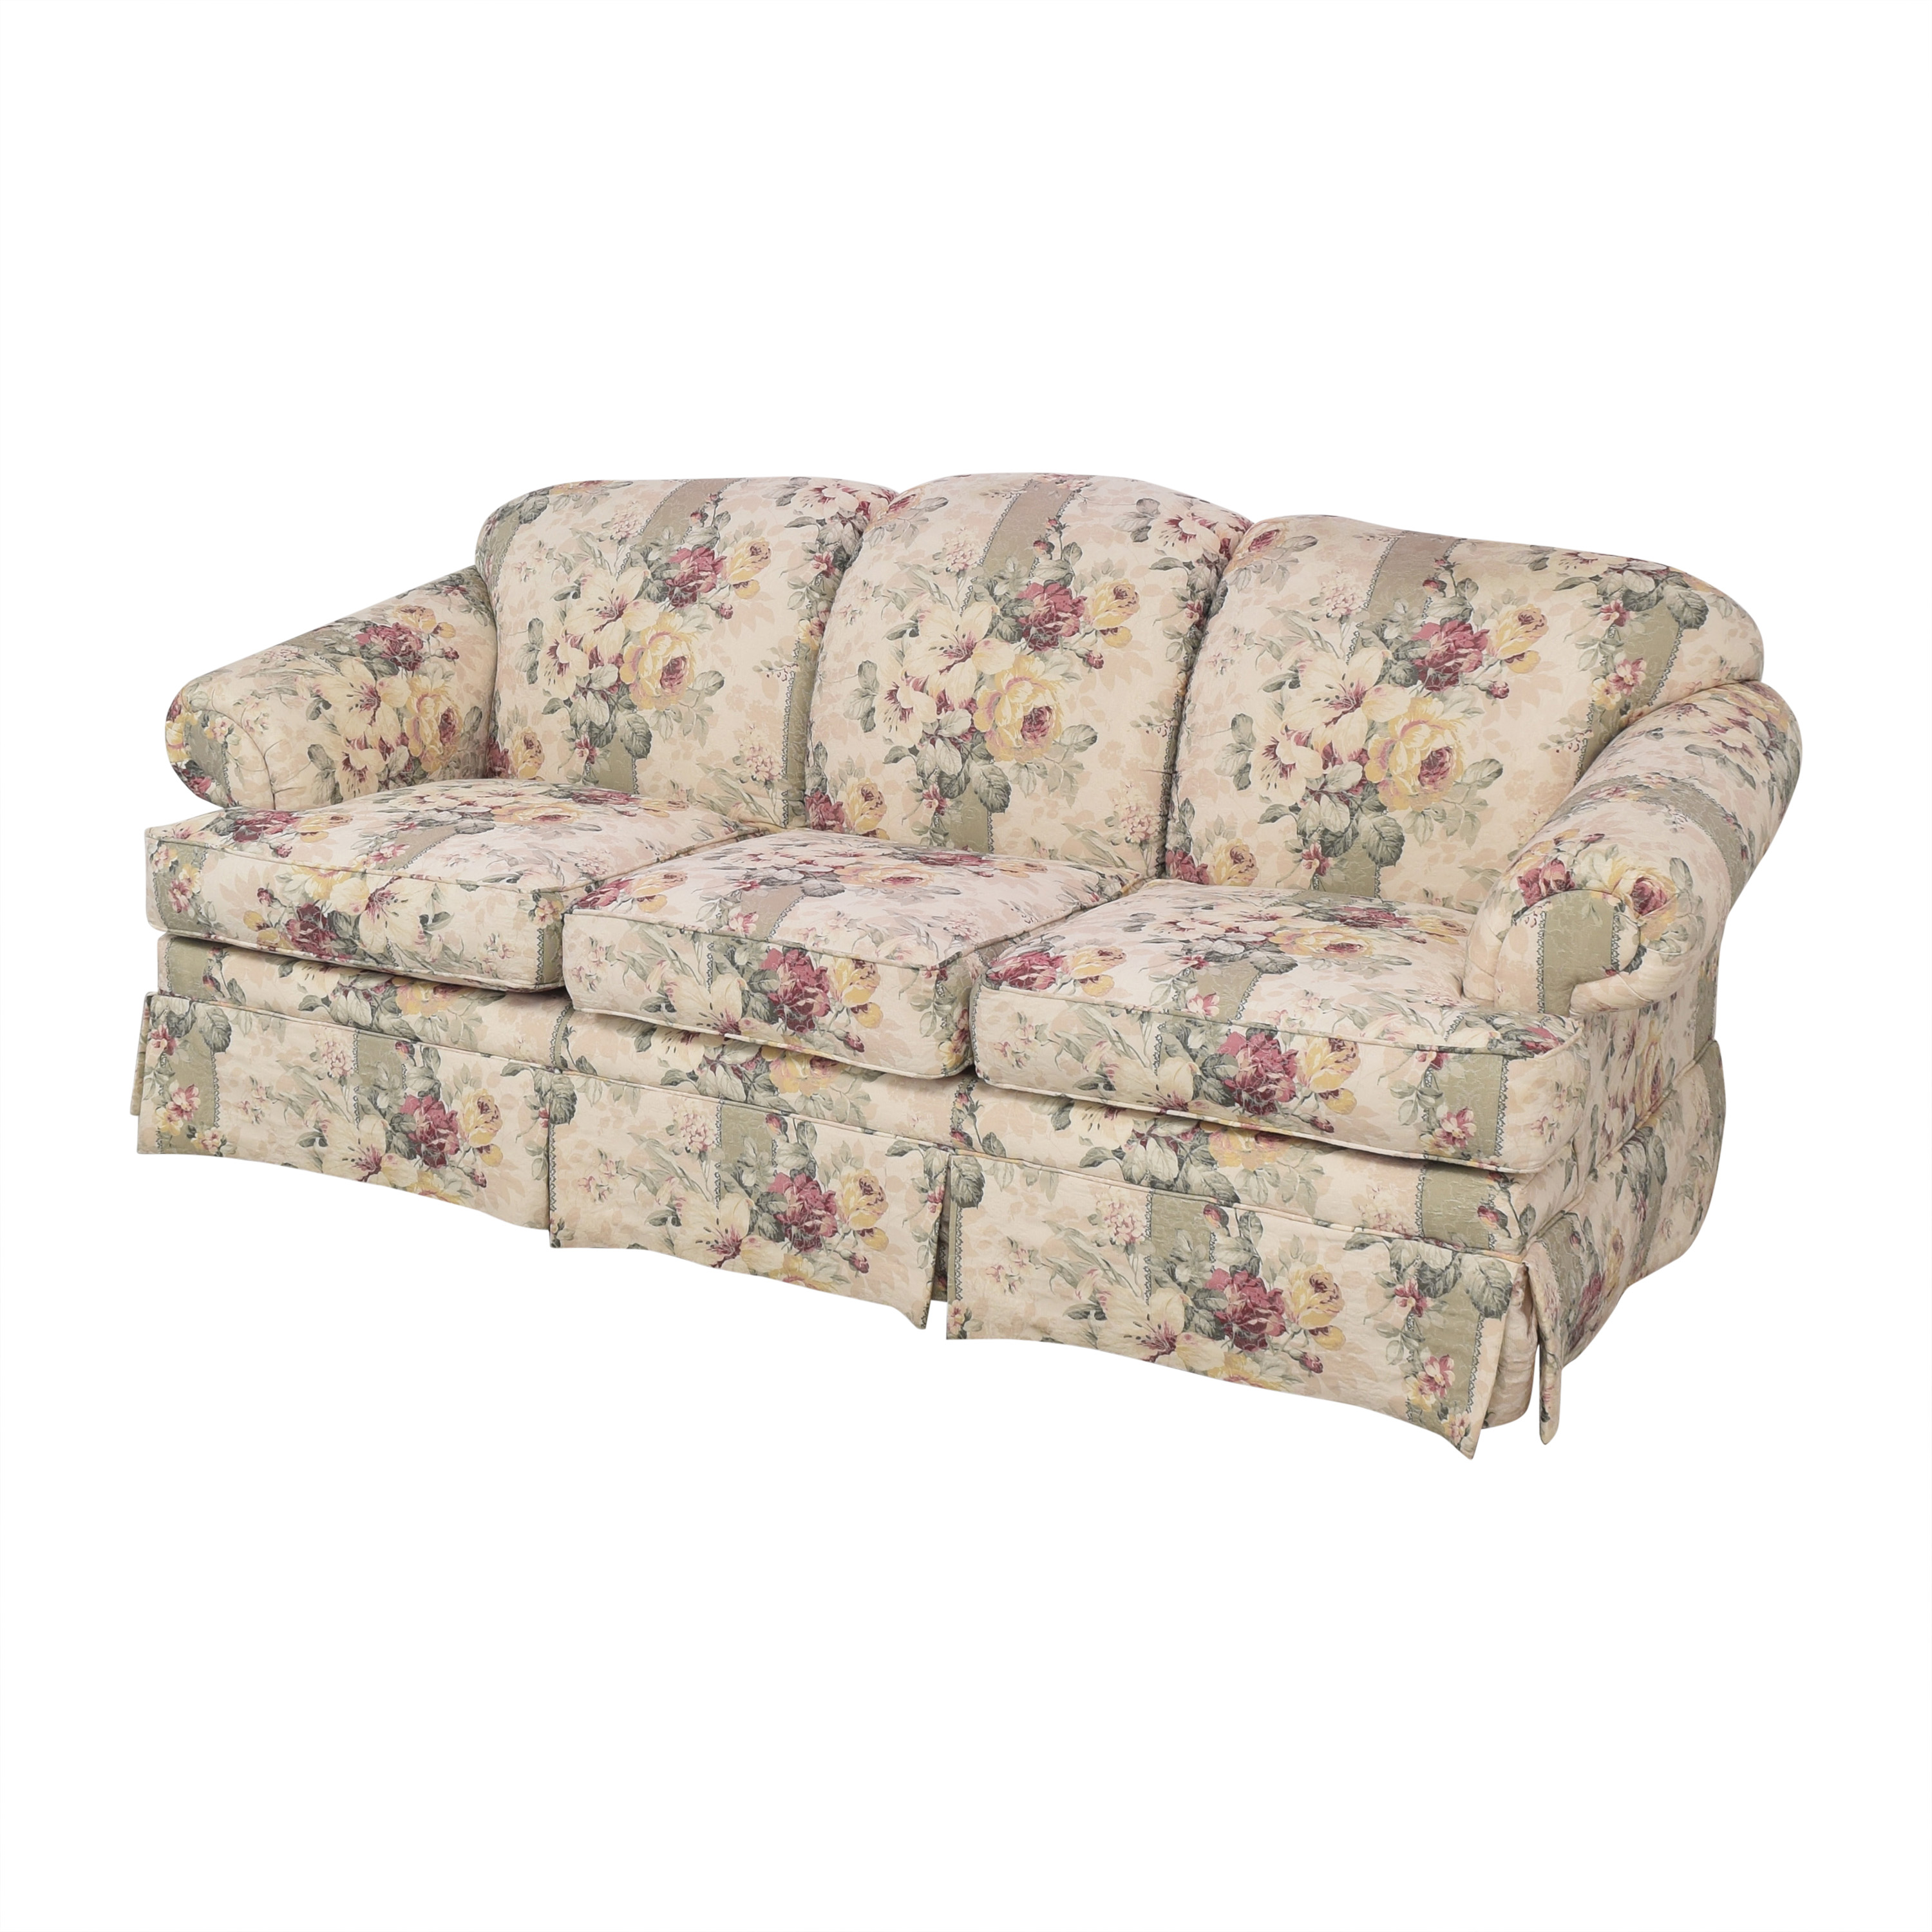 Rowe Furniture Floral Skirted Sofa Rowe Furniture